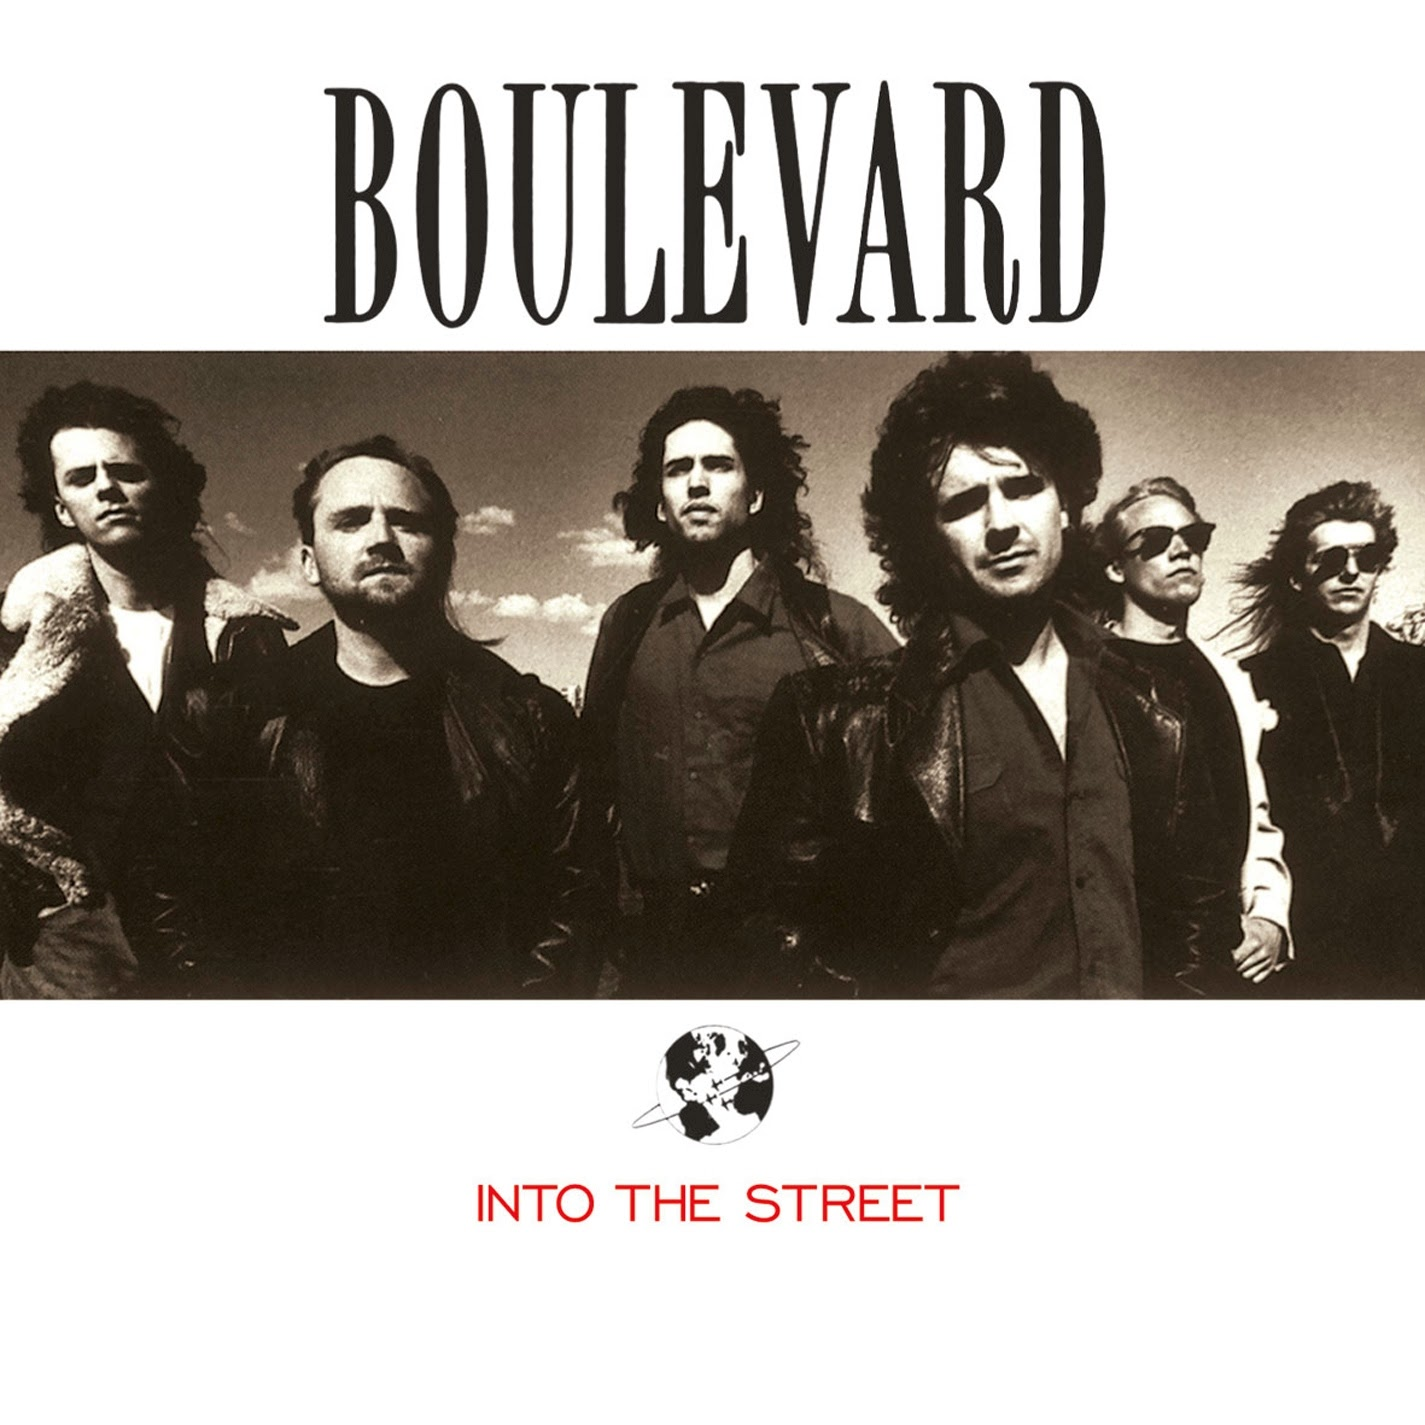 Boulevard Into the street 1990 aor melodic rock music blogspot albums bands rar